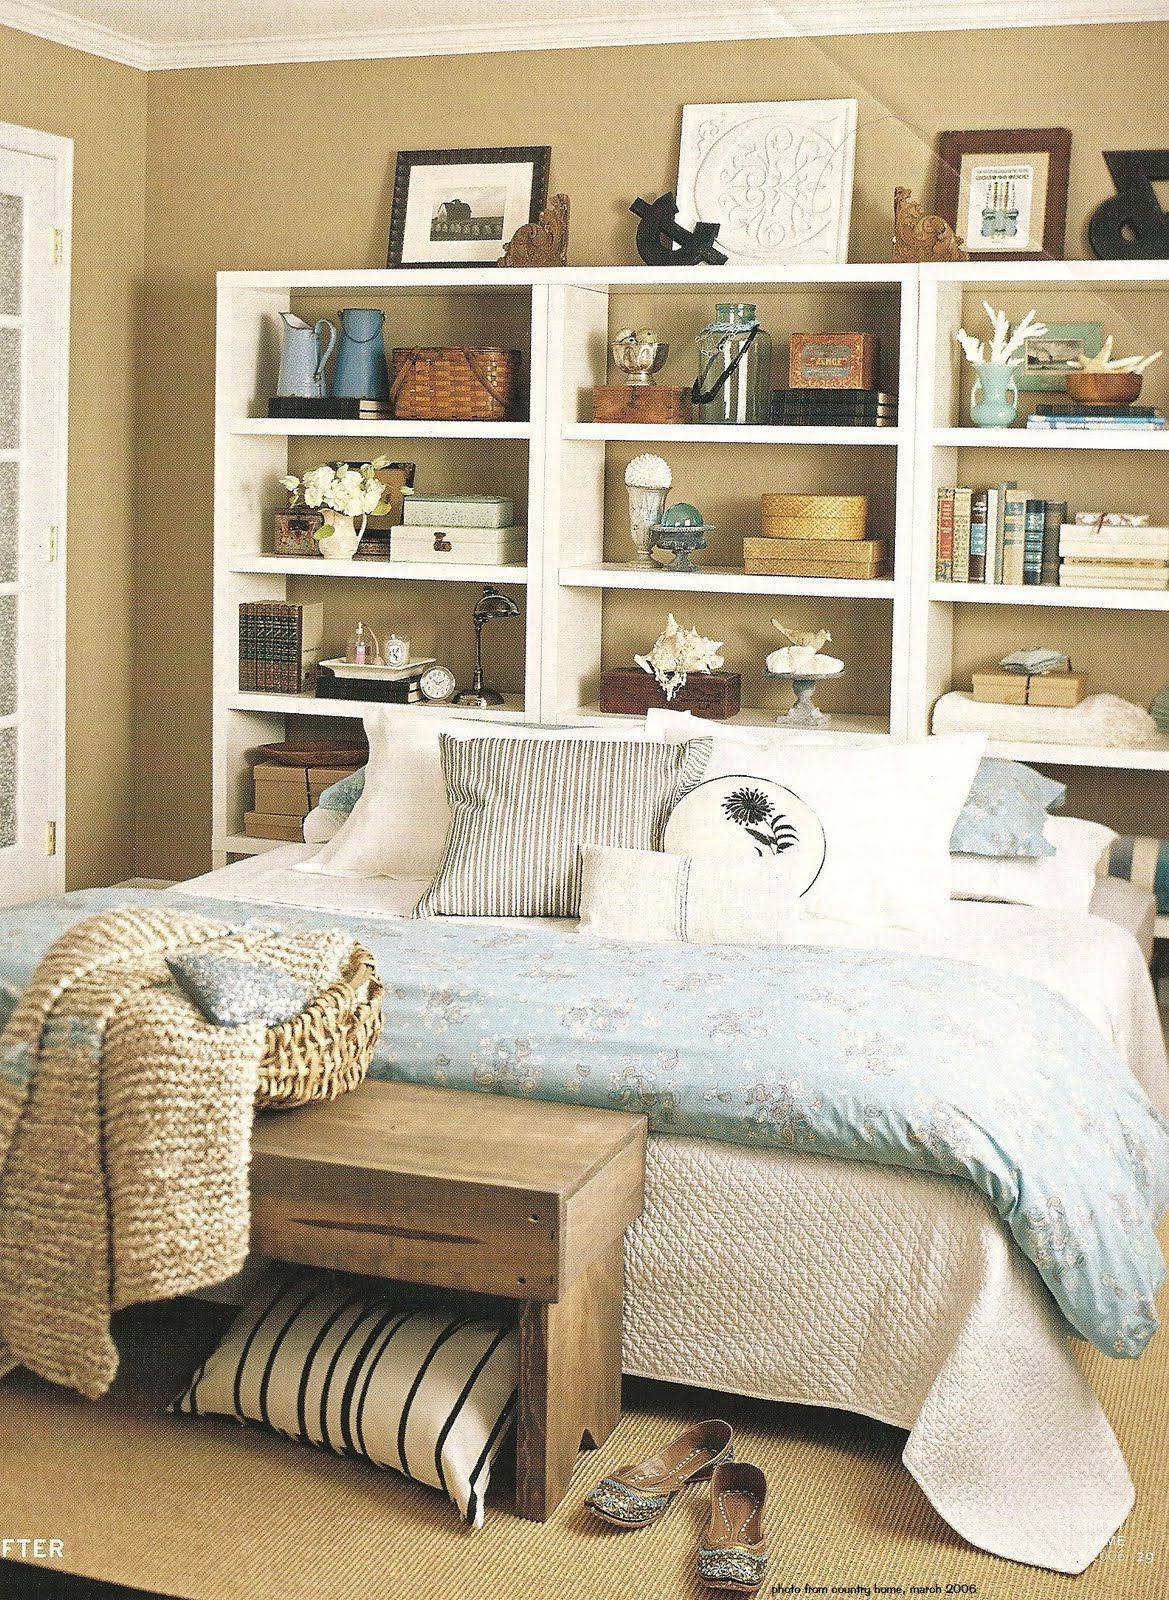 Fab Find Of The Week IKEA Bookcases As Headboards Bella Boho